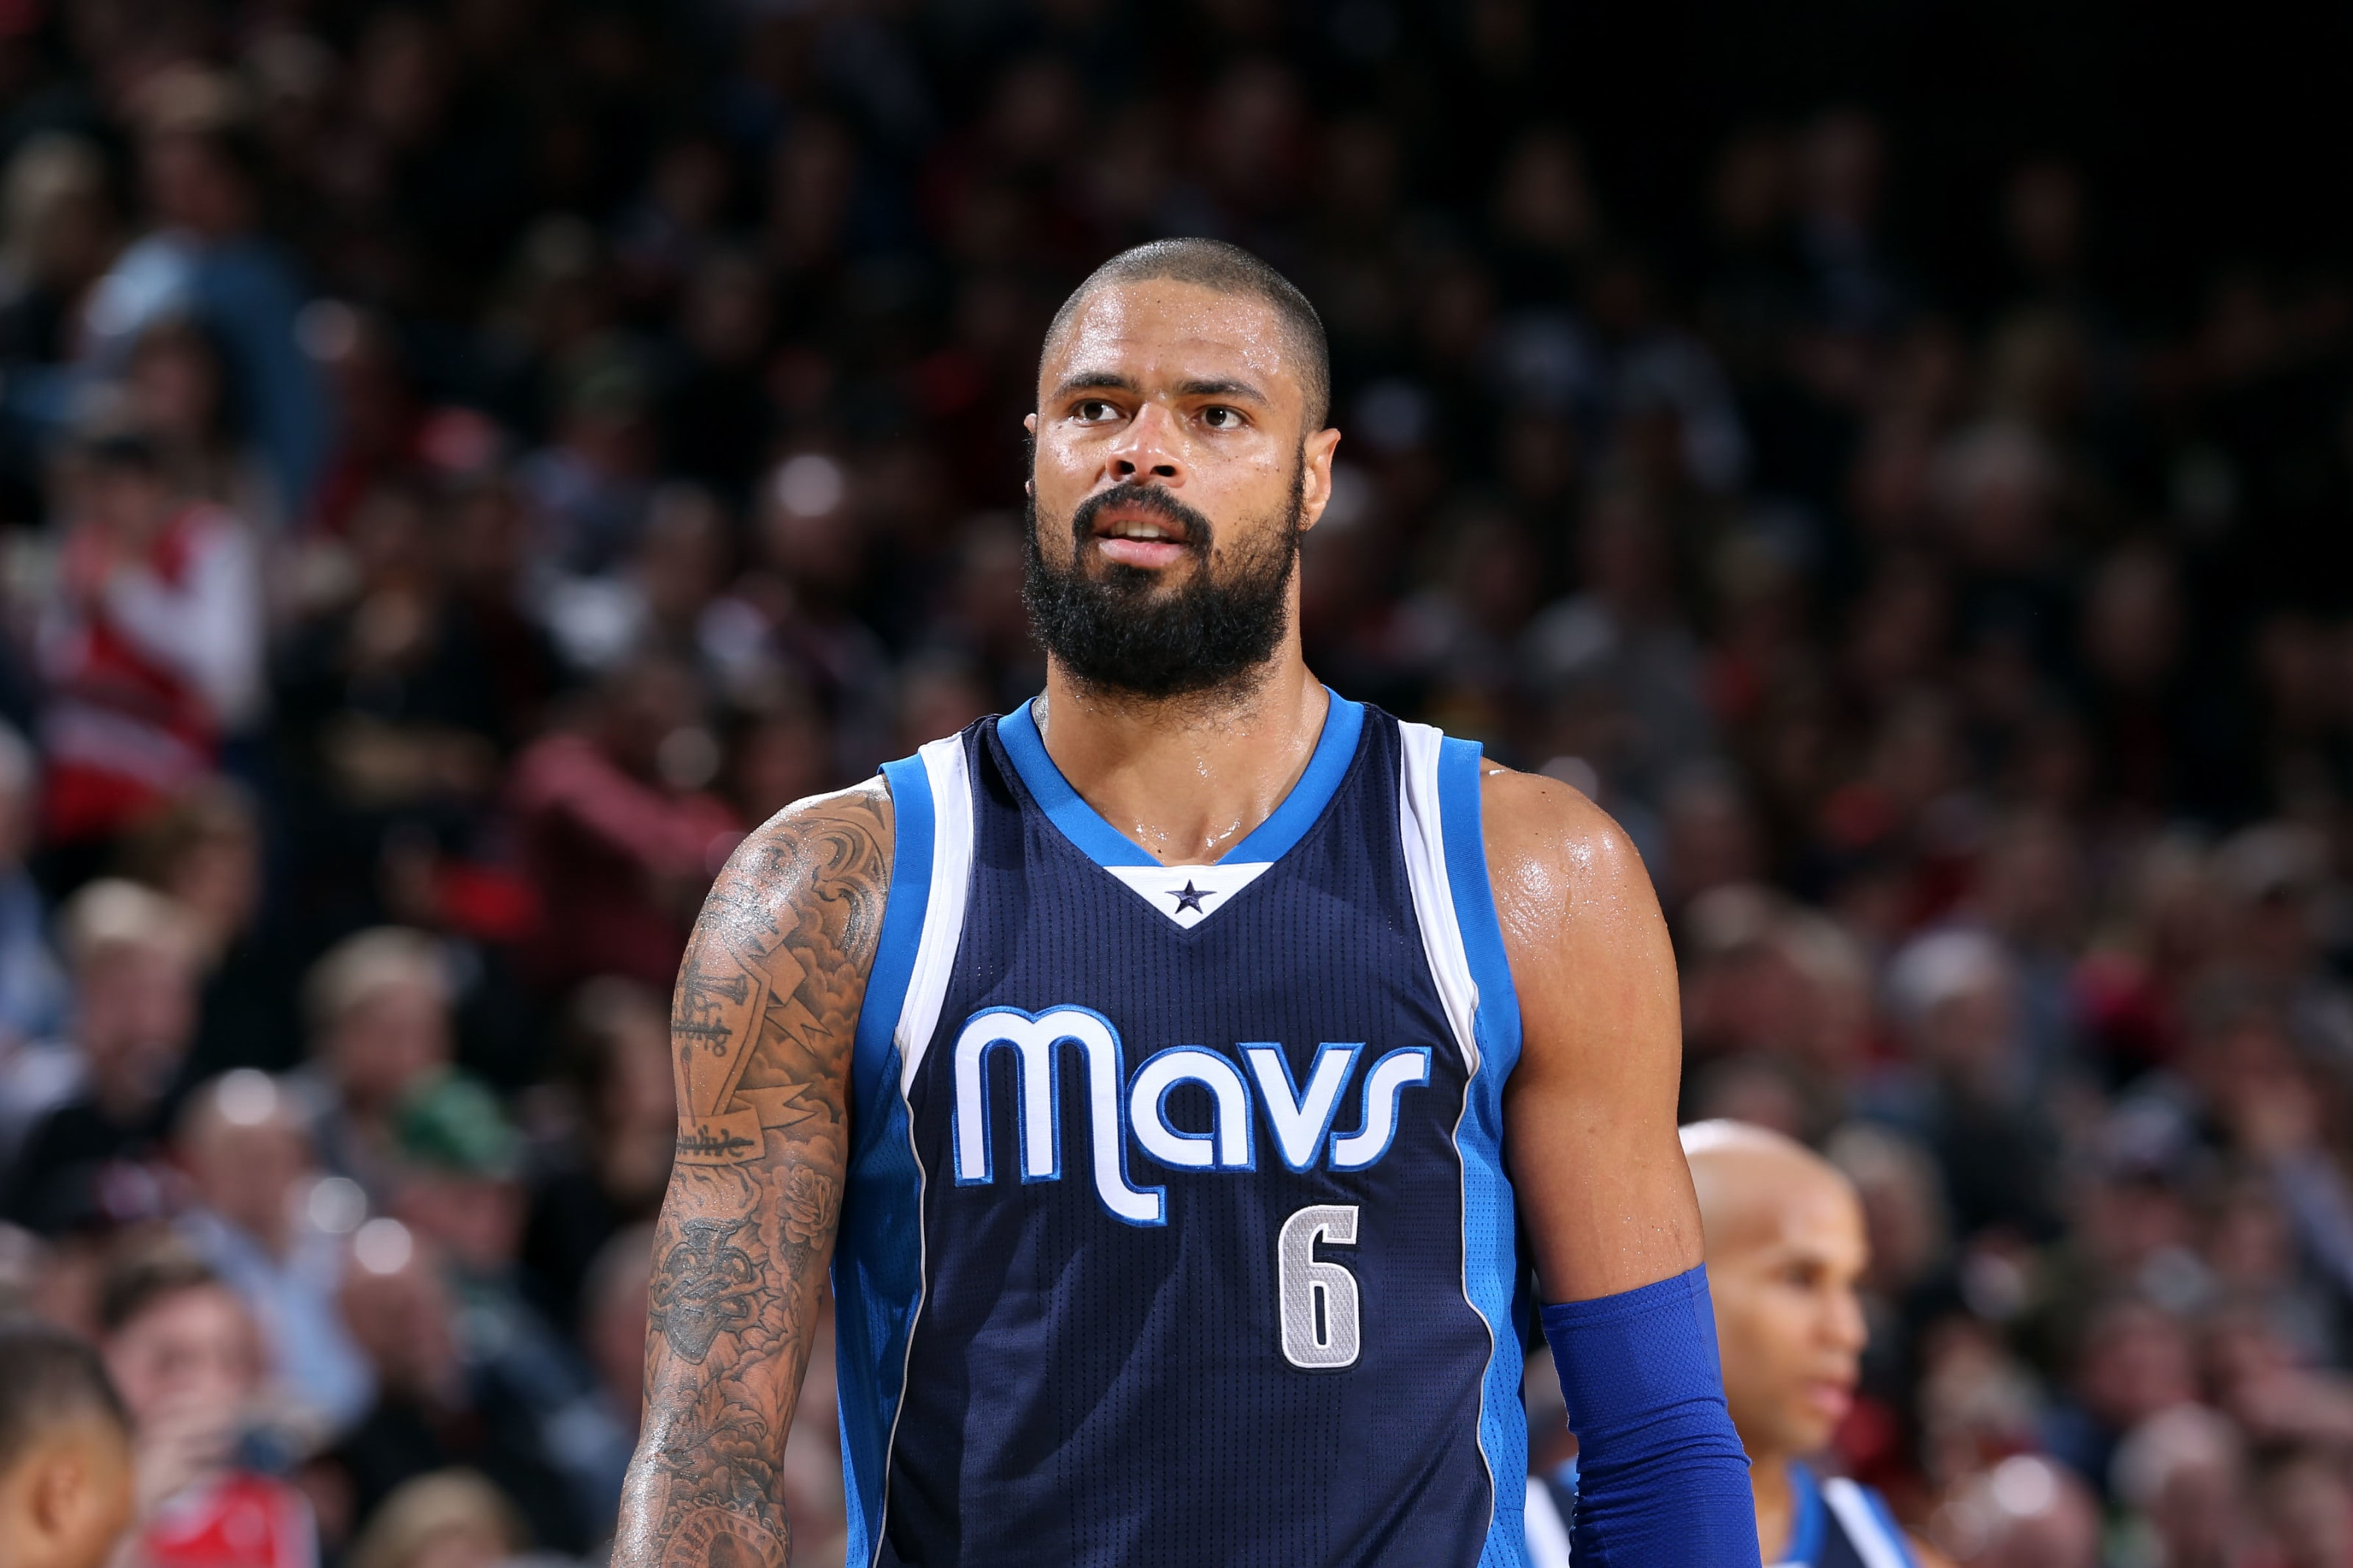 Dallas Mavericks: Should the Mavs bring back Tyson Chandler?